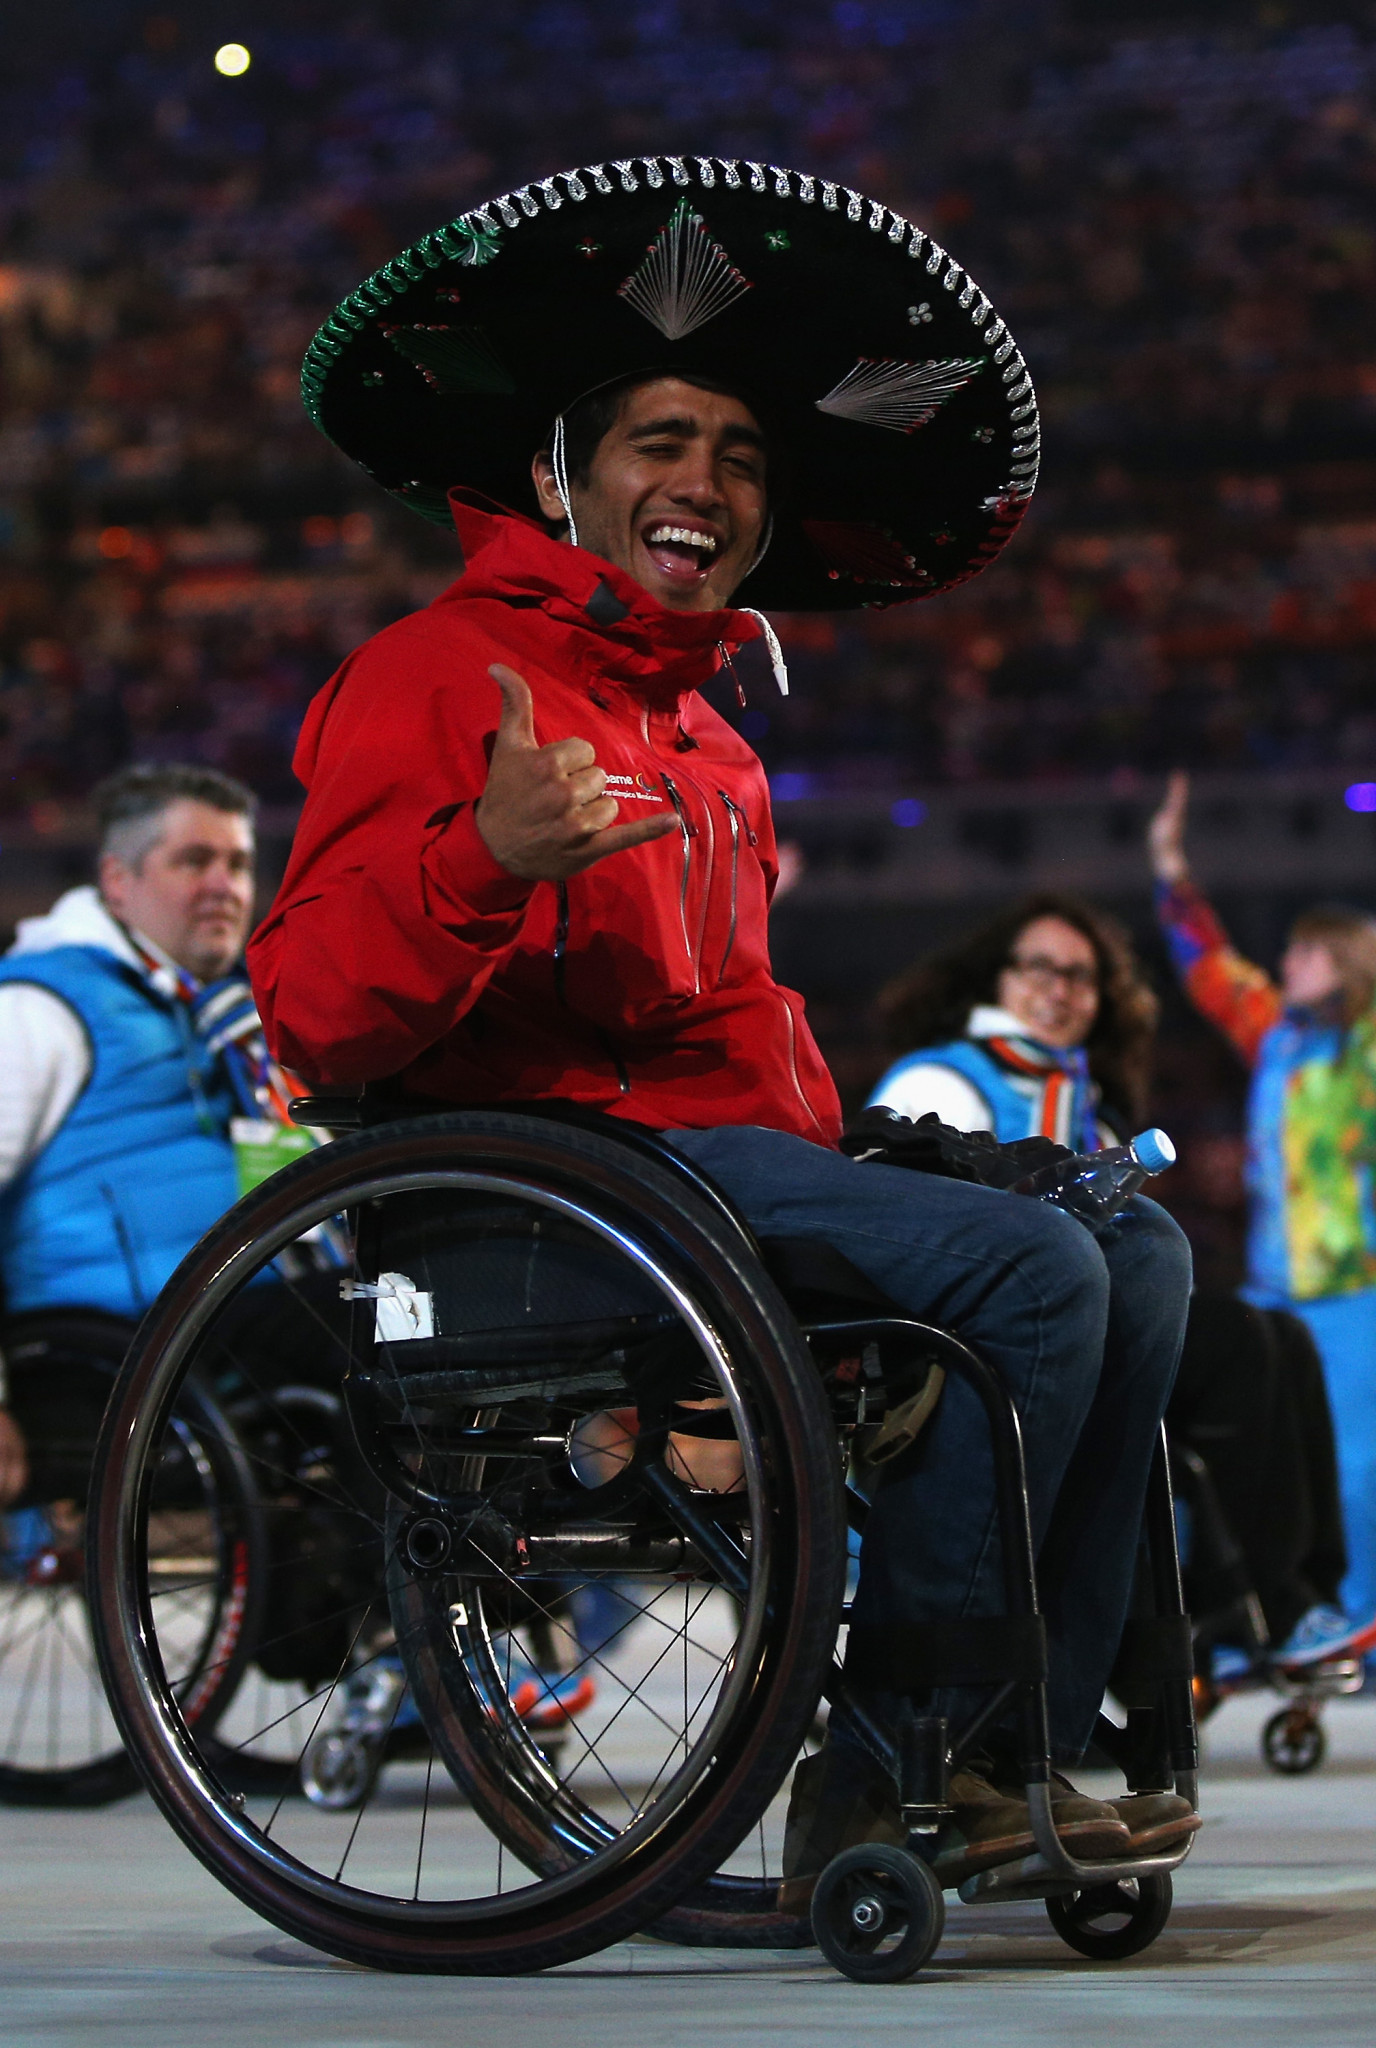 Arly Velasquez is one of 25 people who the IPC has chosen to video blog the upcoming Games  ©Getty Images